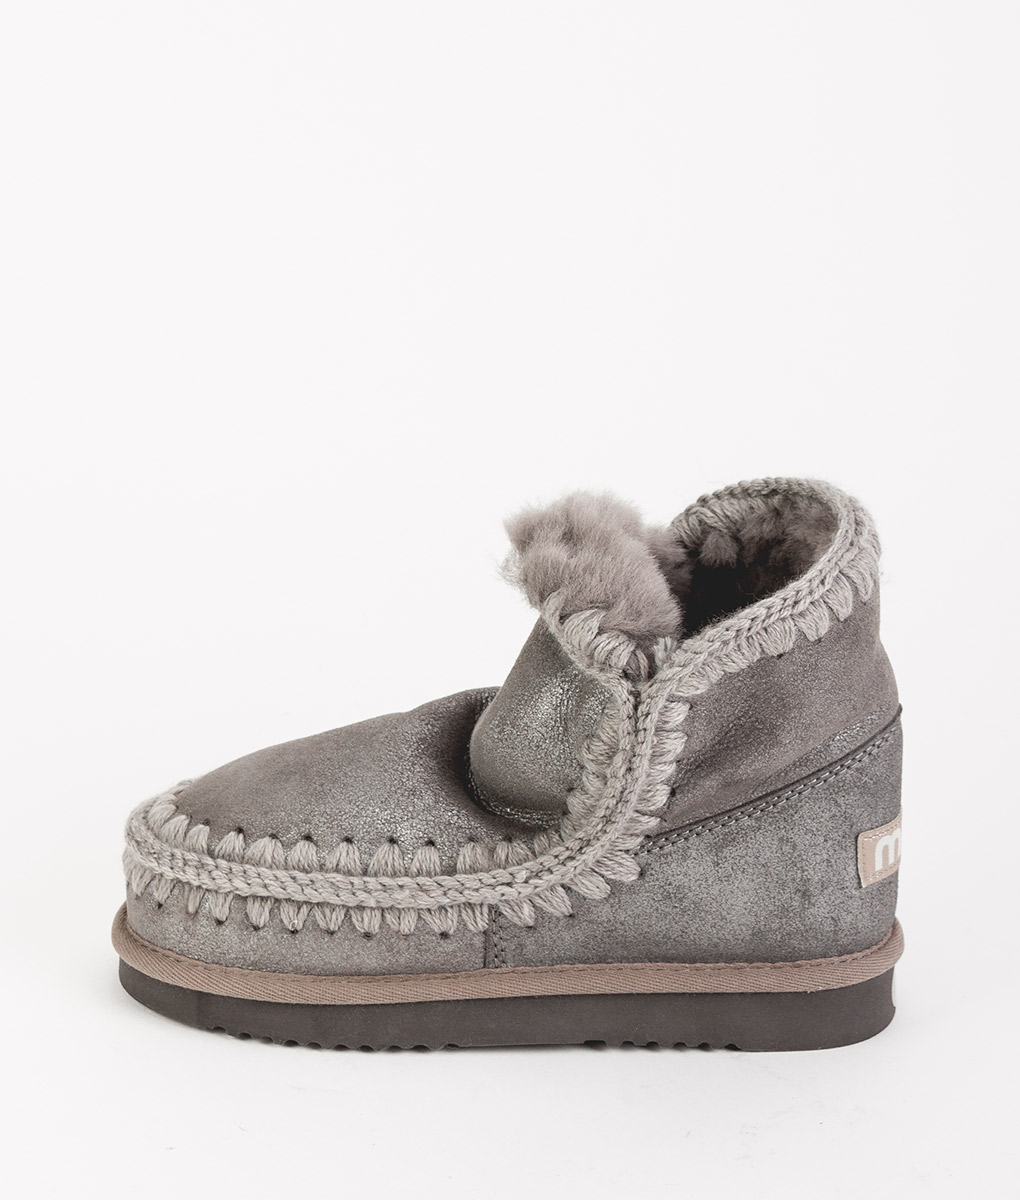 MOU Women Ankle Boots ESKIMO 18, Grey 234.99